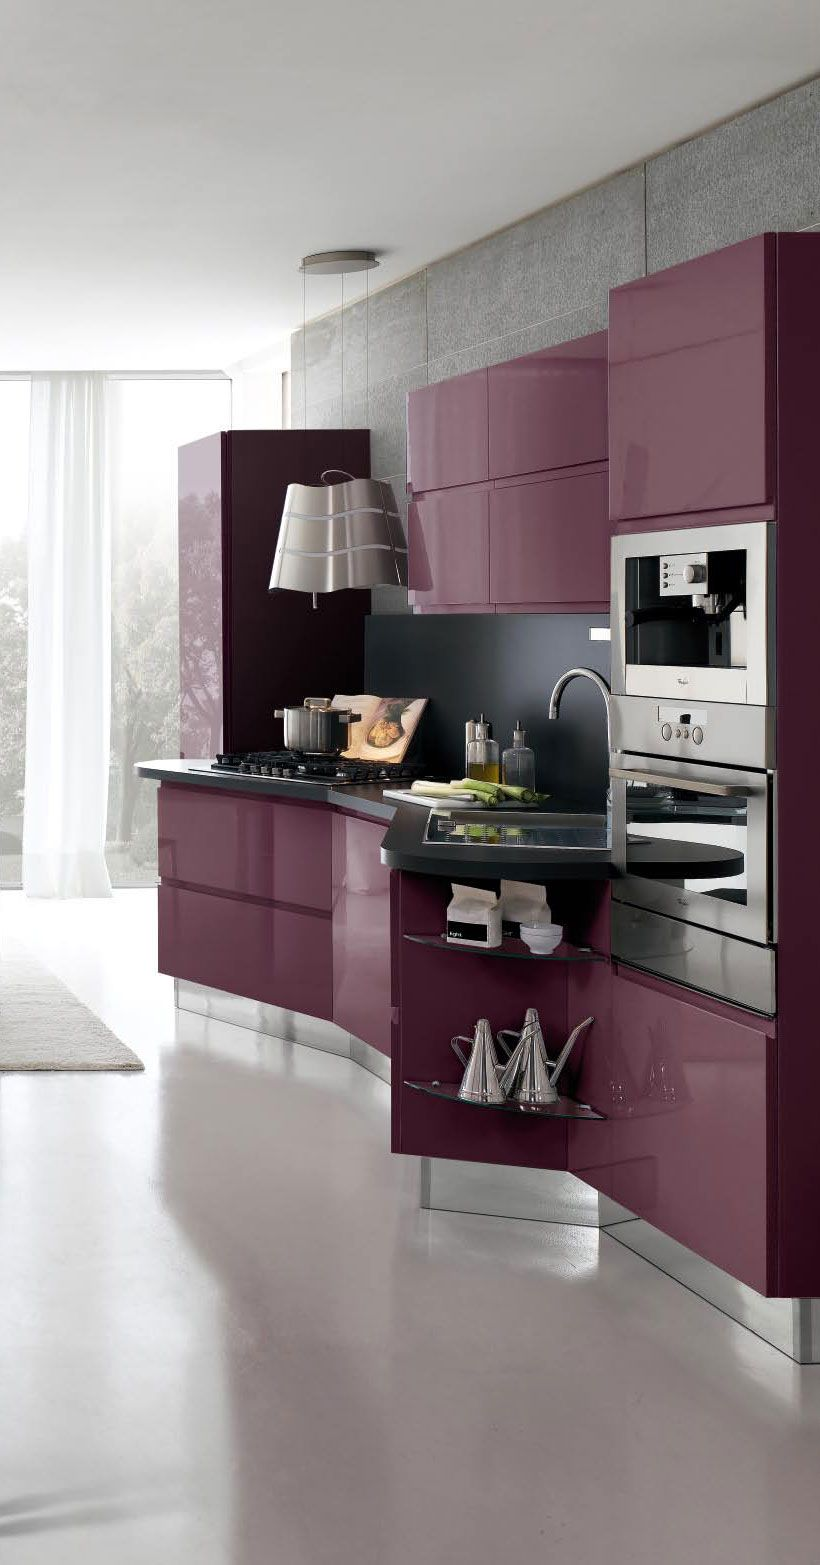 Italian Kitchen Furniture Modern Kitchen Cabinets Furniture Kitchen Idyllic Modern Kitchen